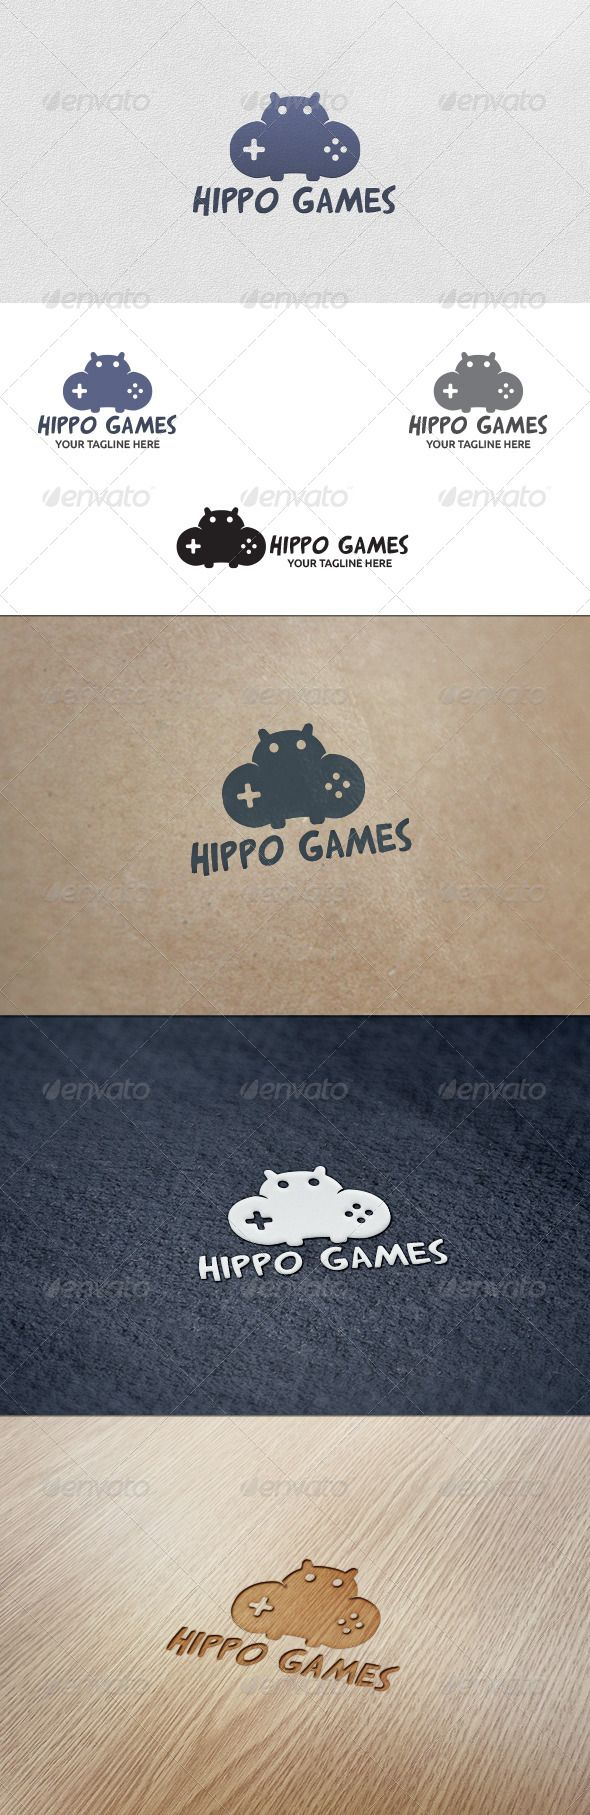 For me, really looks like a android robot with game controller~ Hippo Games - Logo Template.